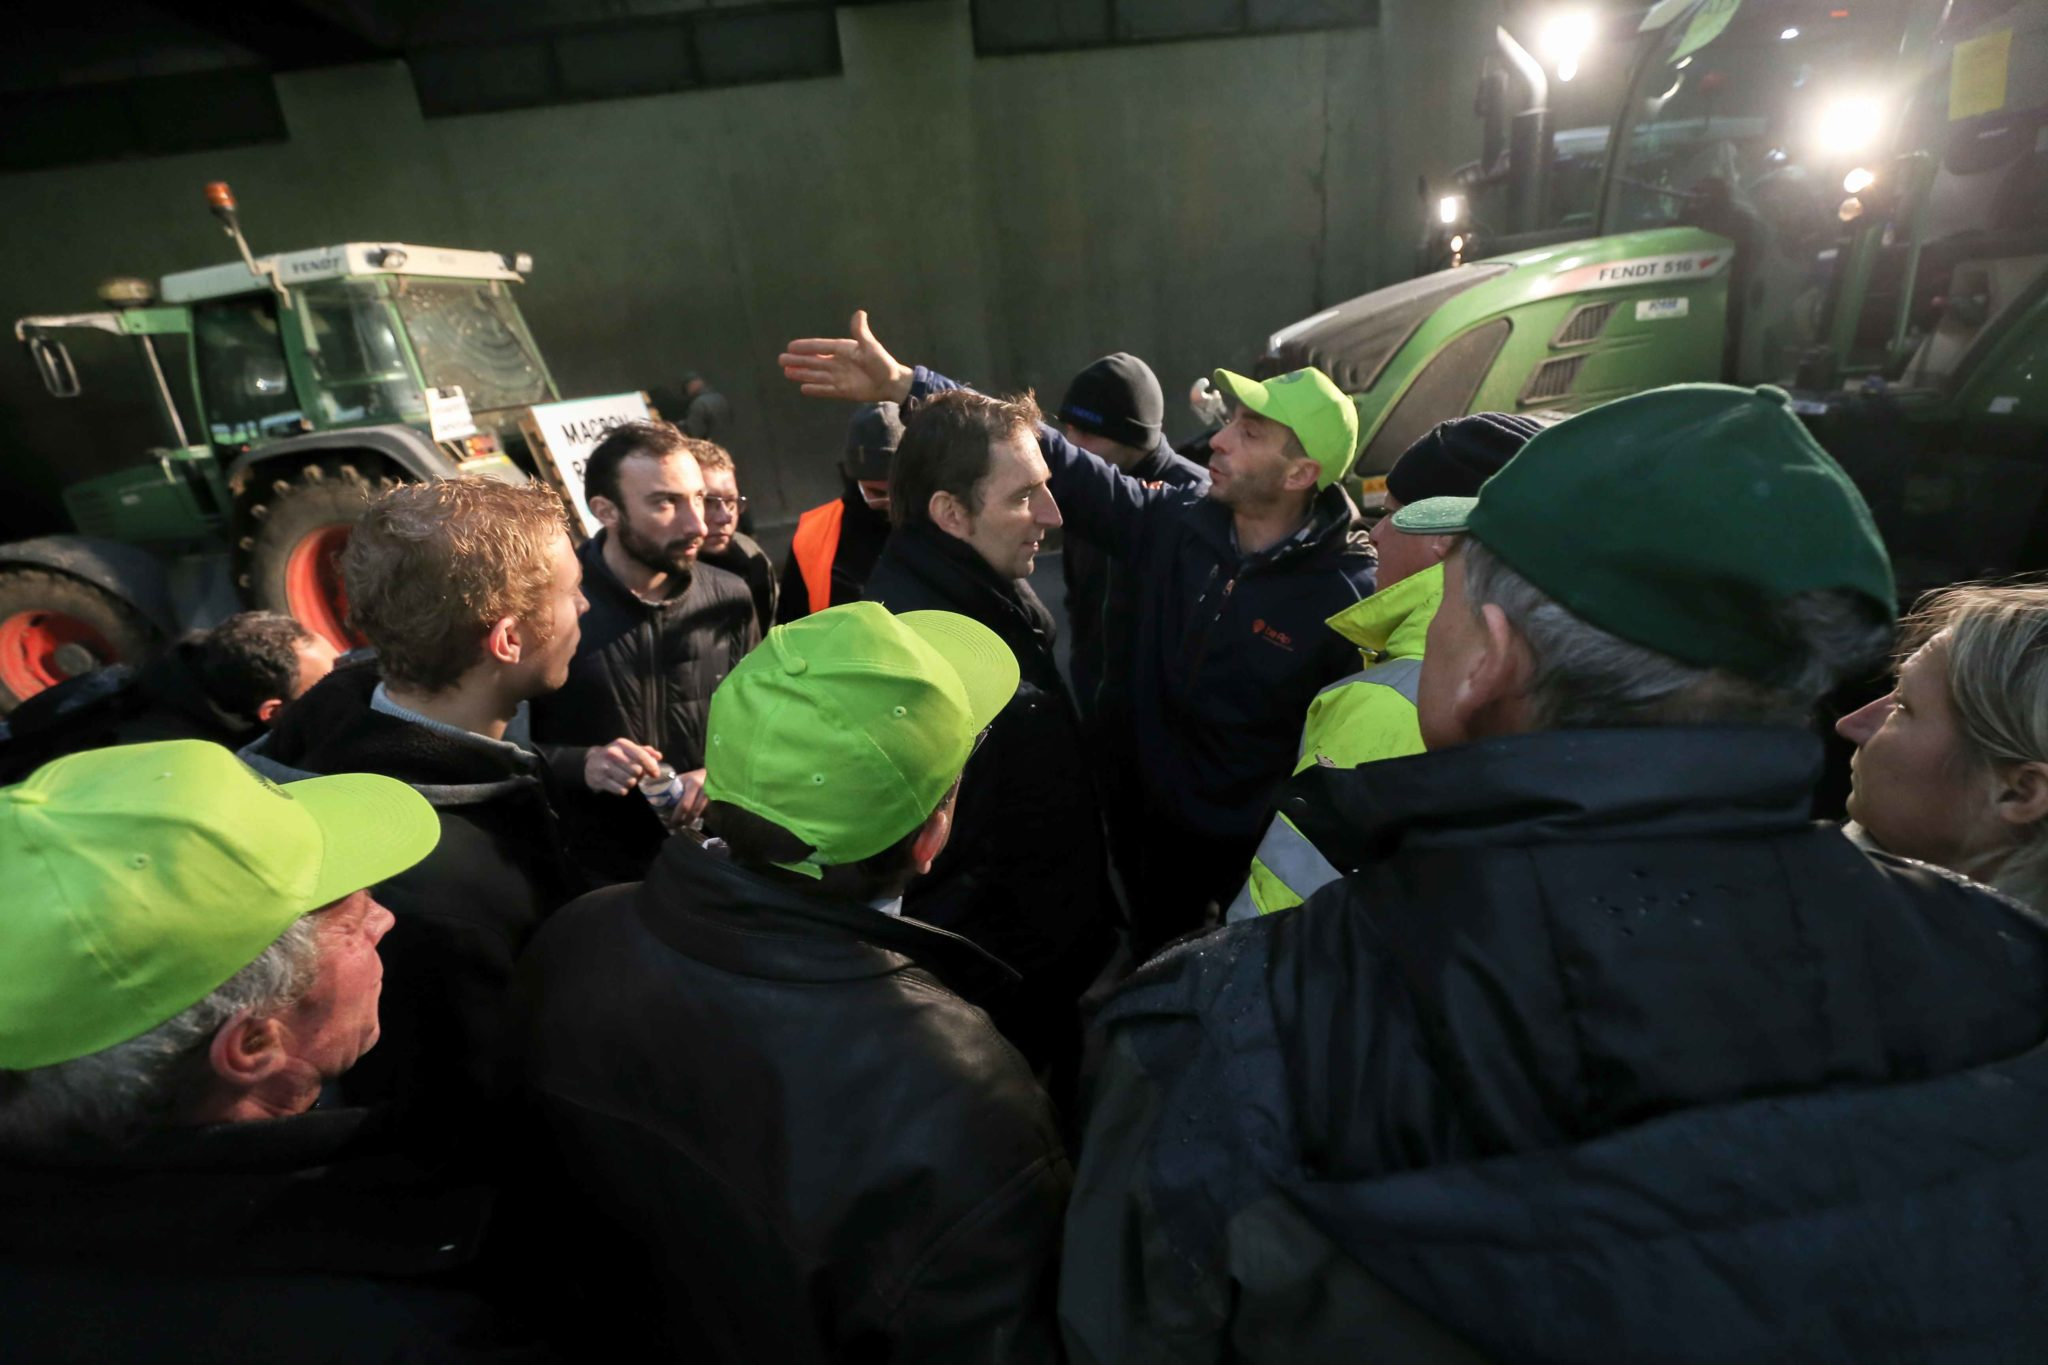 Les agriculteurs en discussion dans un tunnel. © Michel Stoupak. Mer 27.11.2019, 15:38:21.